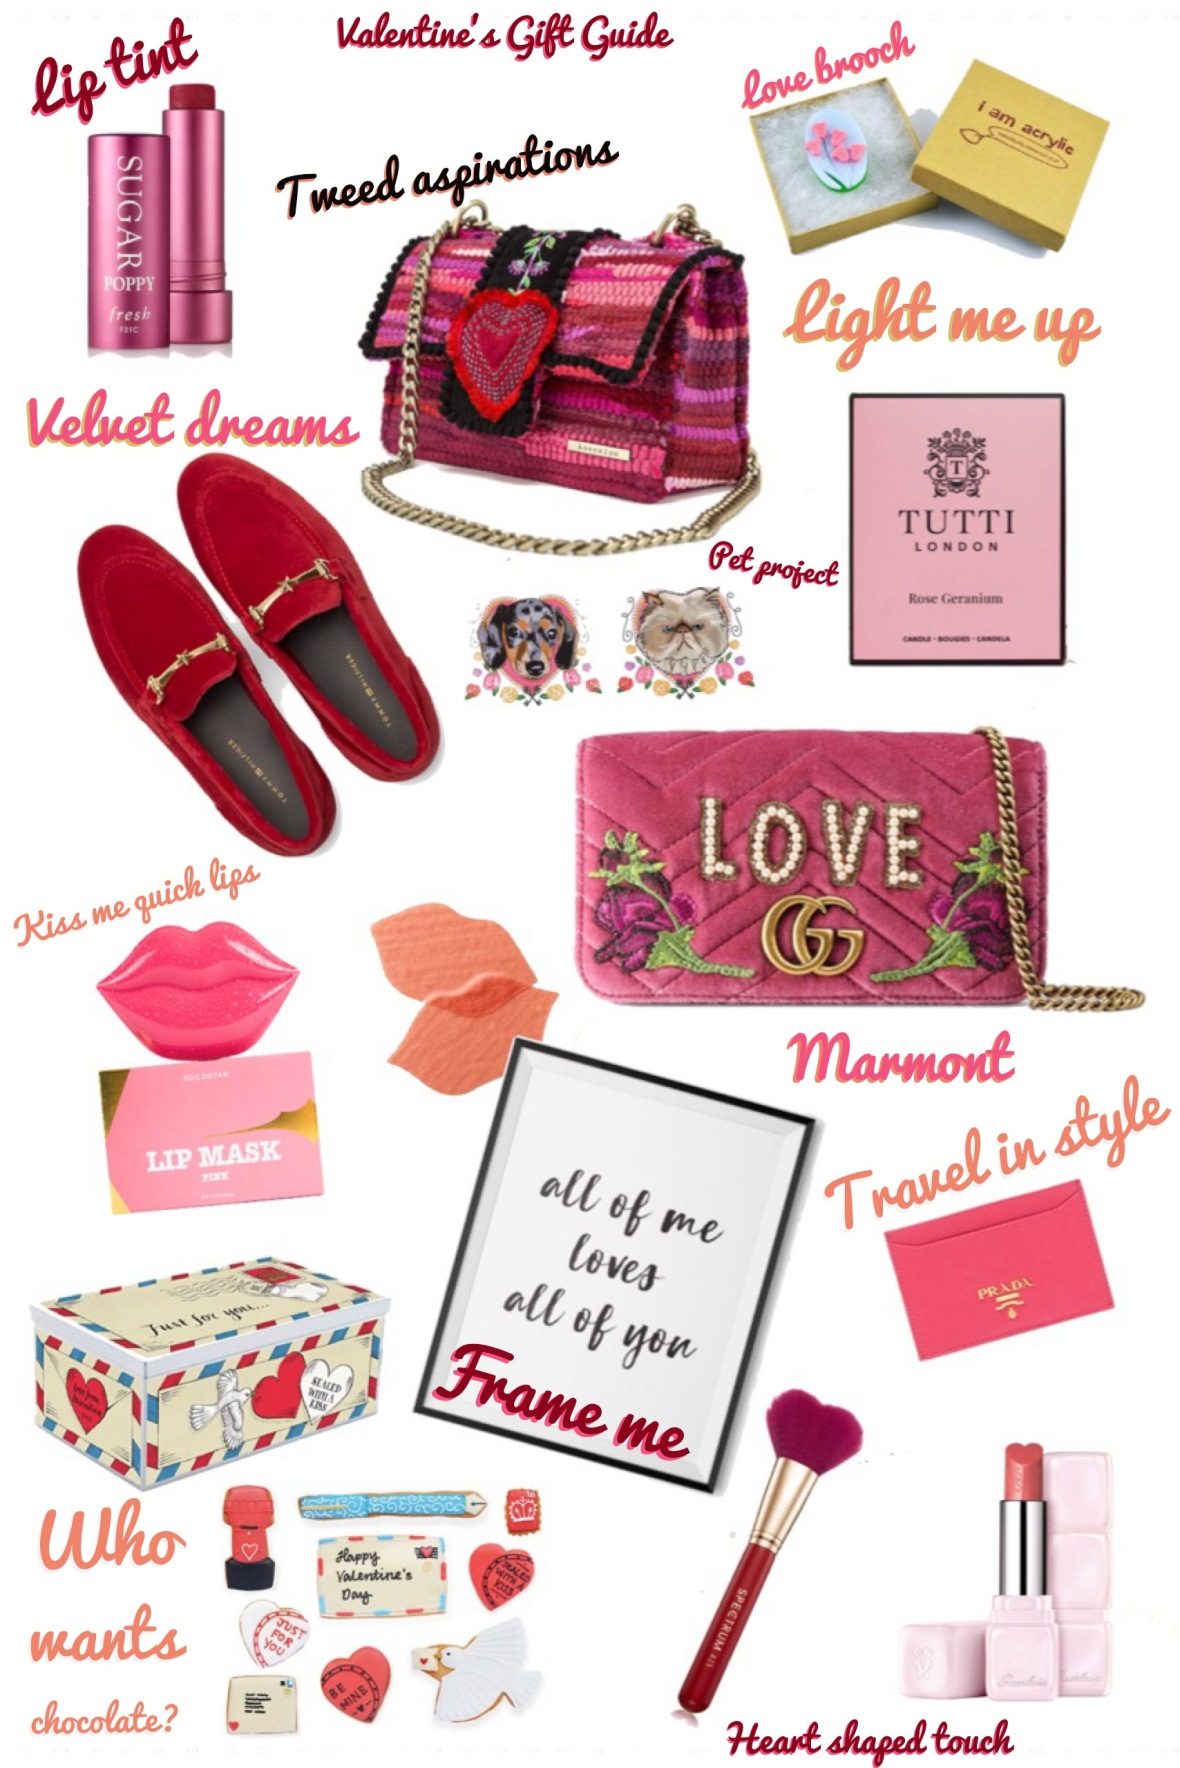 This Valentines gift guide is your perfect go-to for inspiration. Whether you're buying yourself a treat, looking for your girlfriend/partner or wife, even if you're just looking to drop some helpful hints.